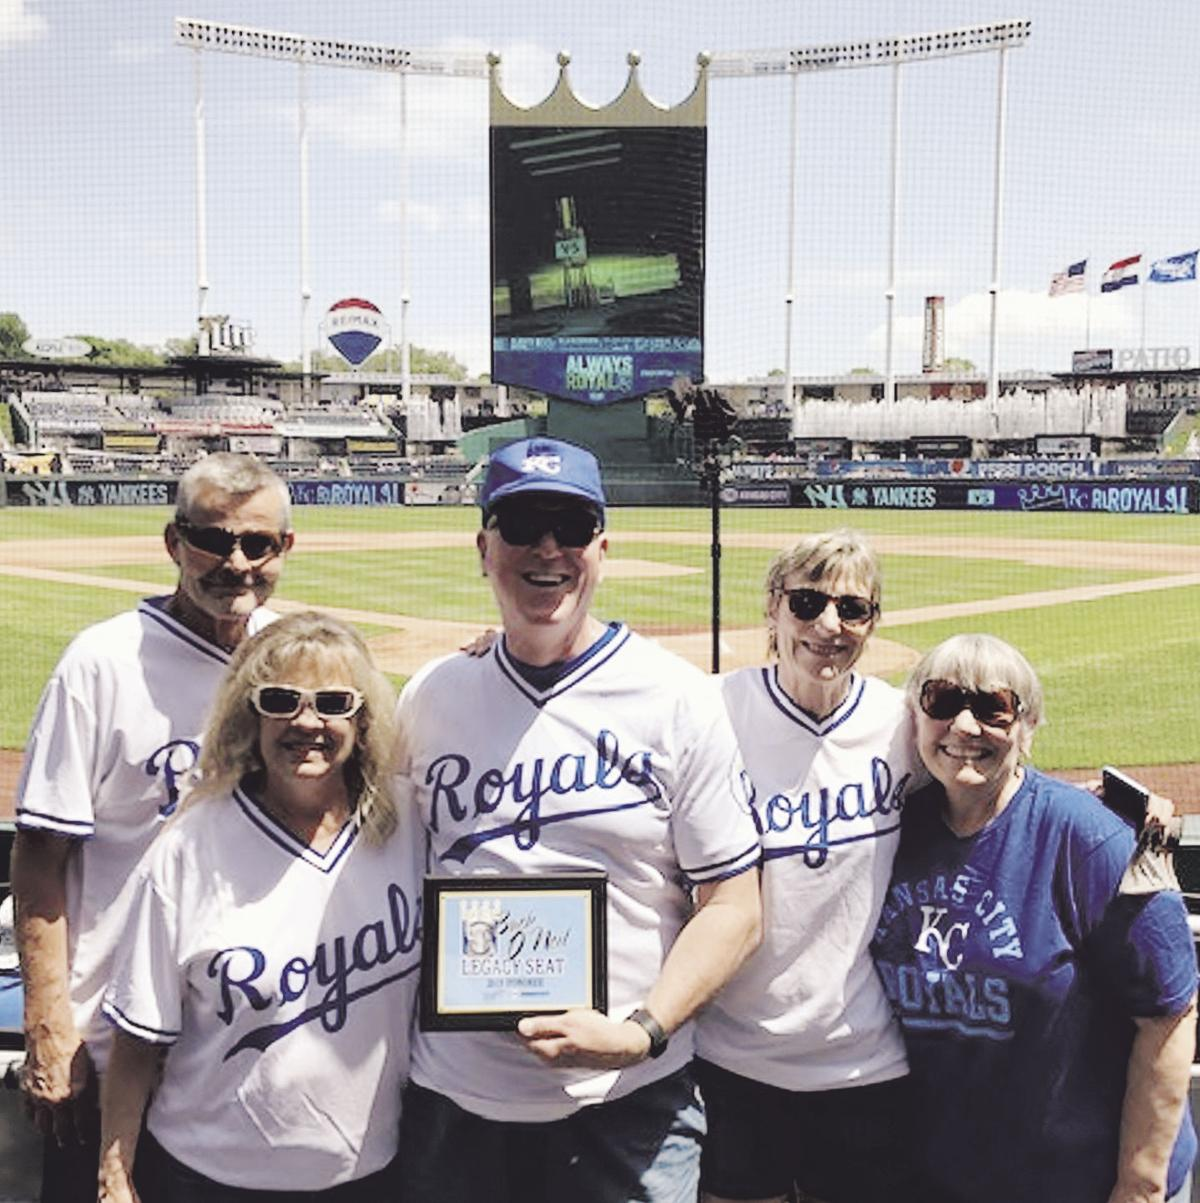 Imaging for Women co-founder honored by Royals